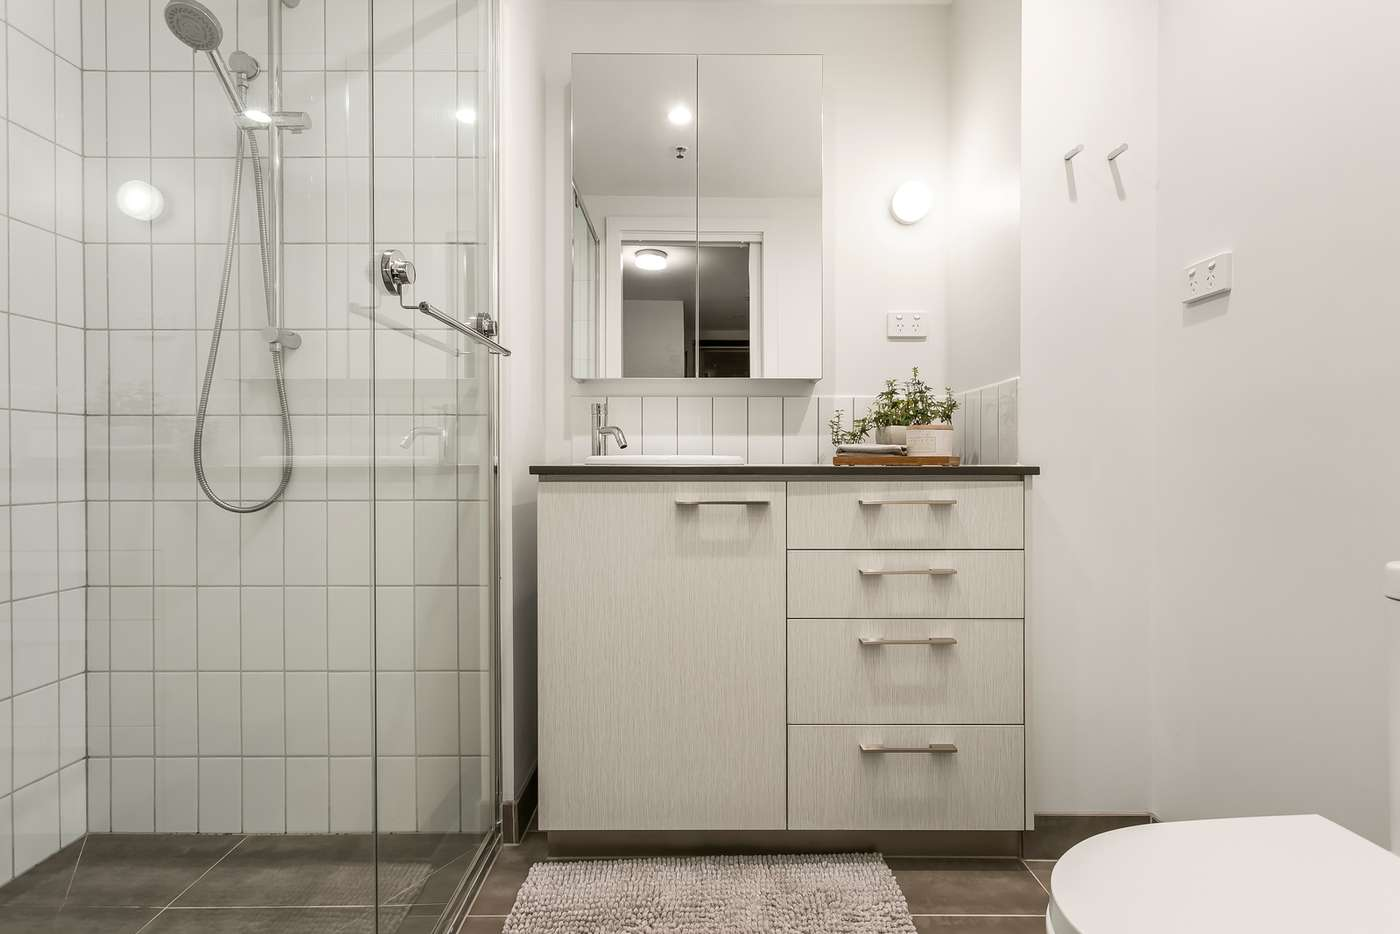 Fifth view of Homely apartment listing, 13c/168 Victoria Road, Northcote VIC 3070